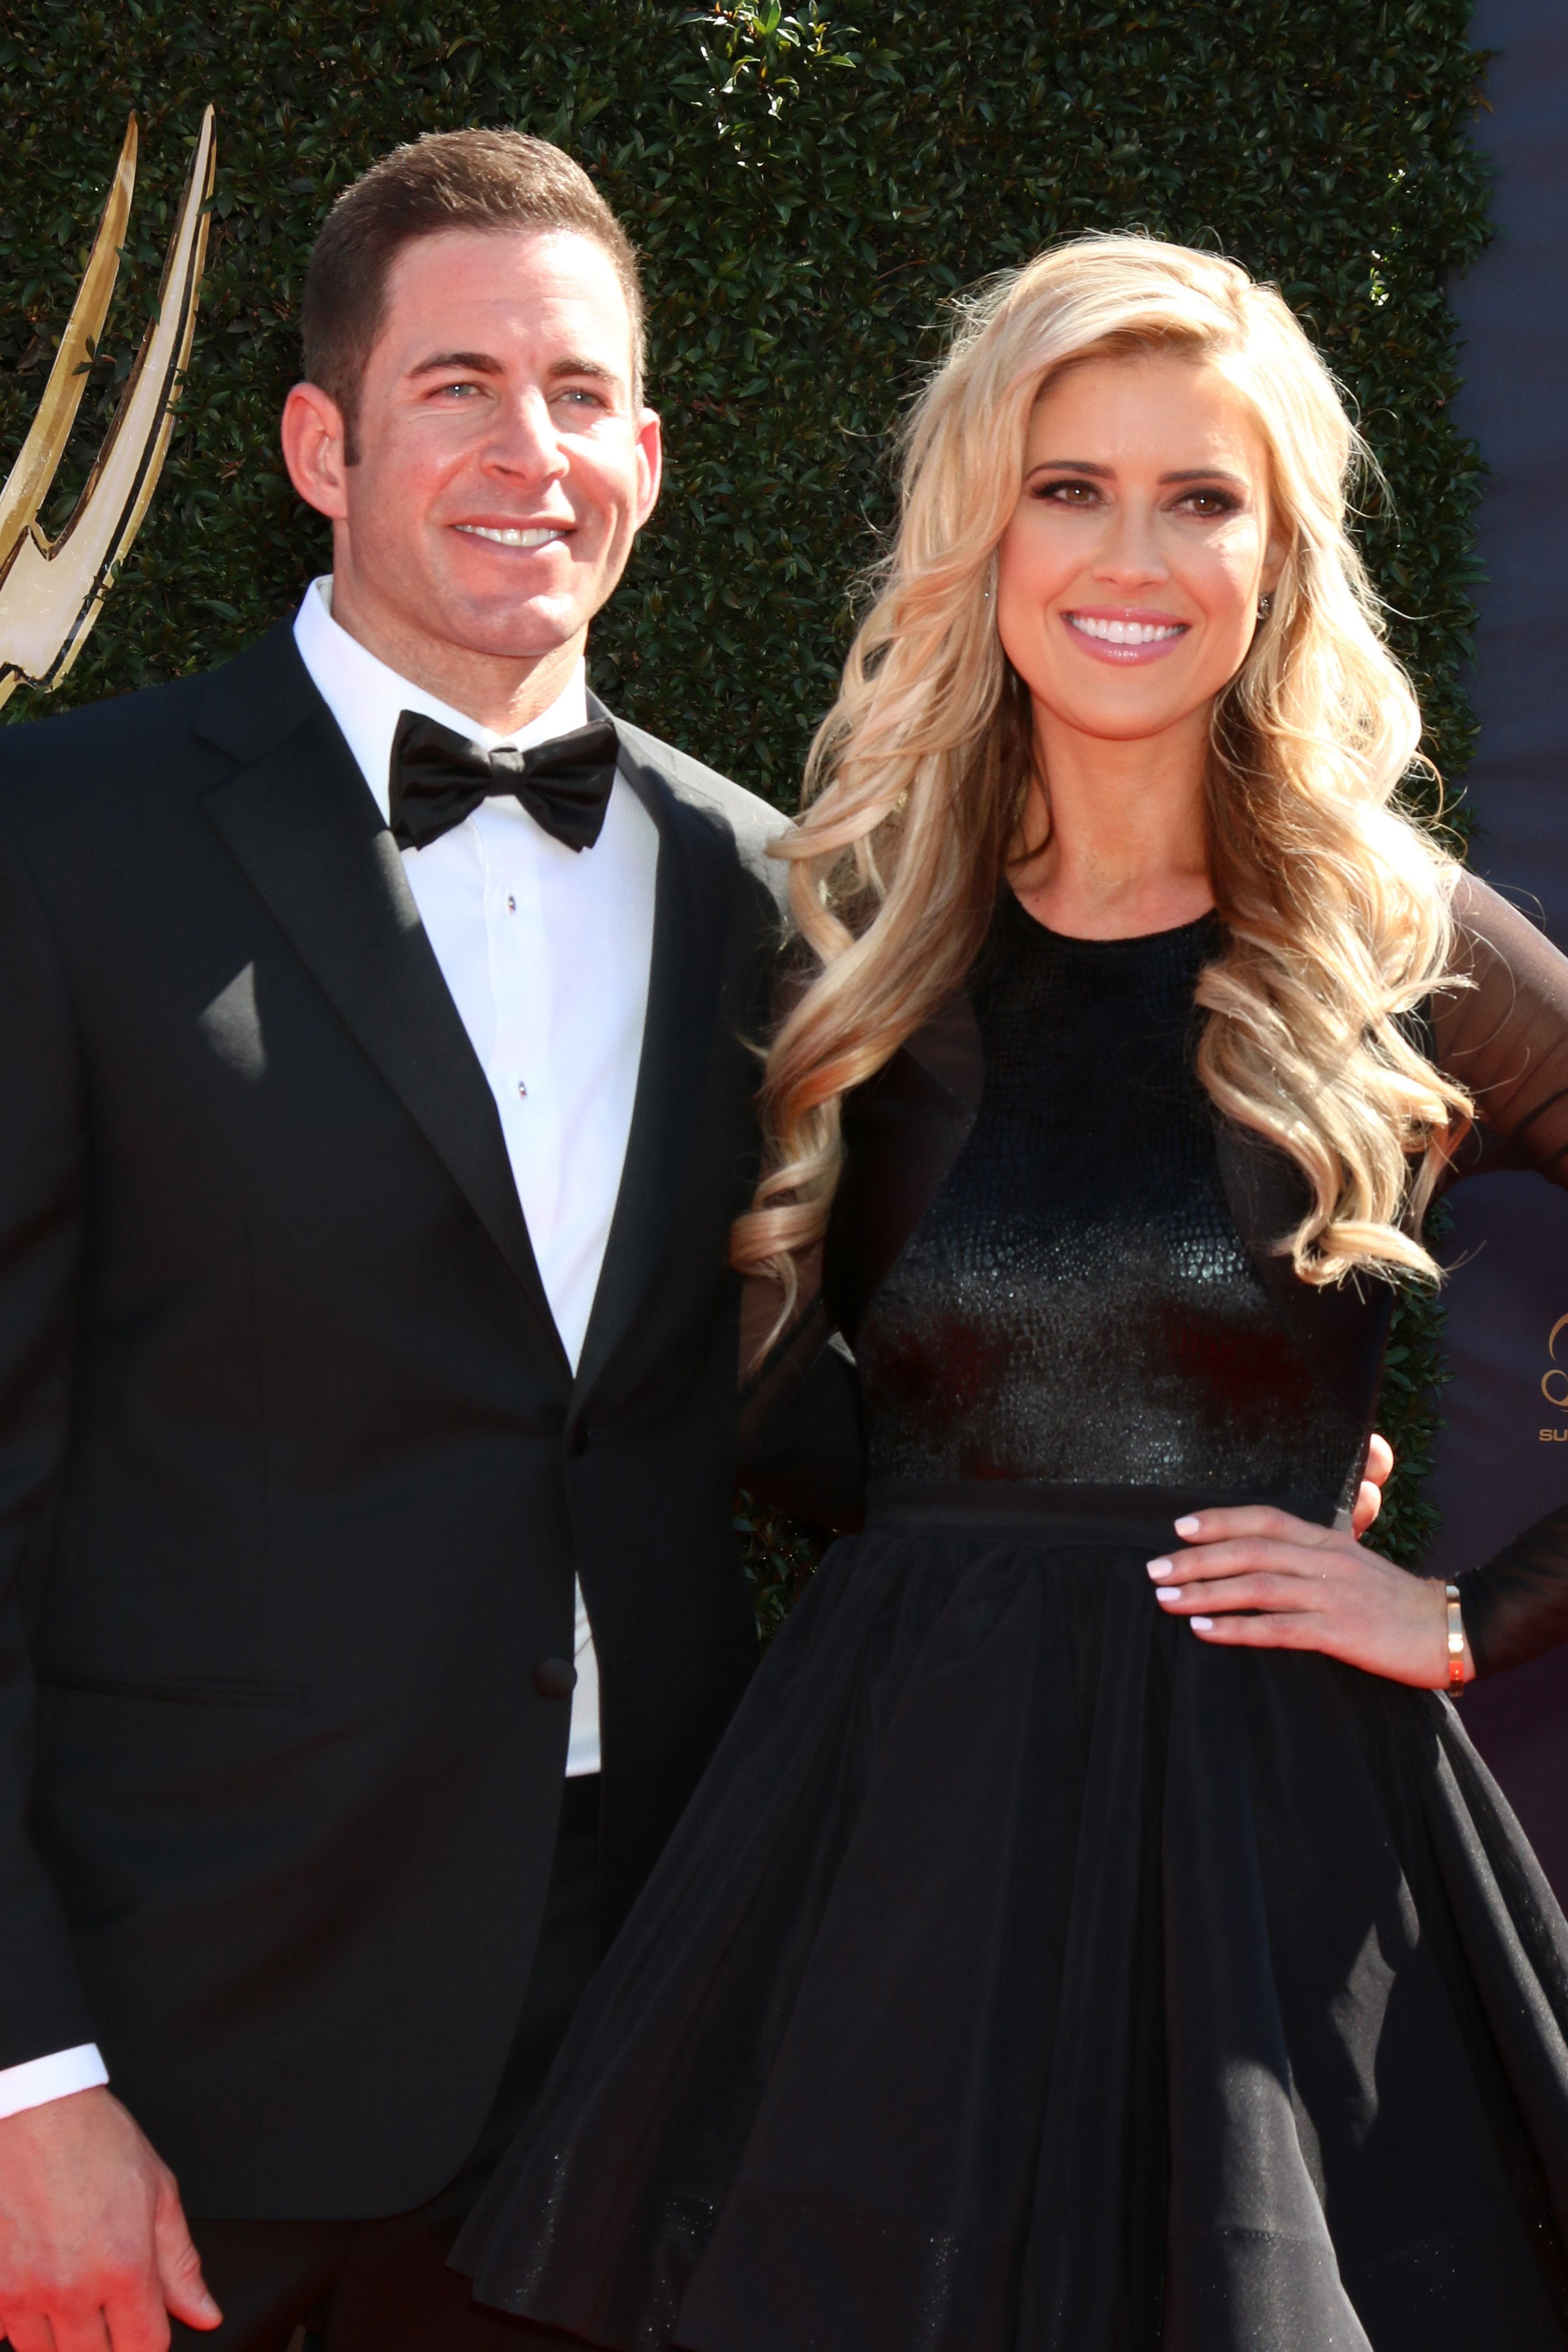 """Tarek El Moussa with his ex-wife and """"Flip and Flop"""" co-host Christina Anstead during the 2017 Daytime Emmy Awards in California. 